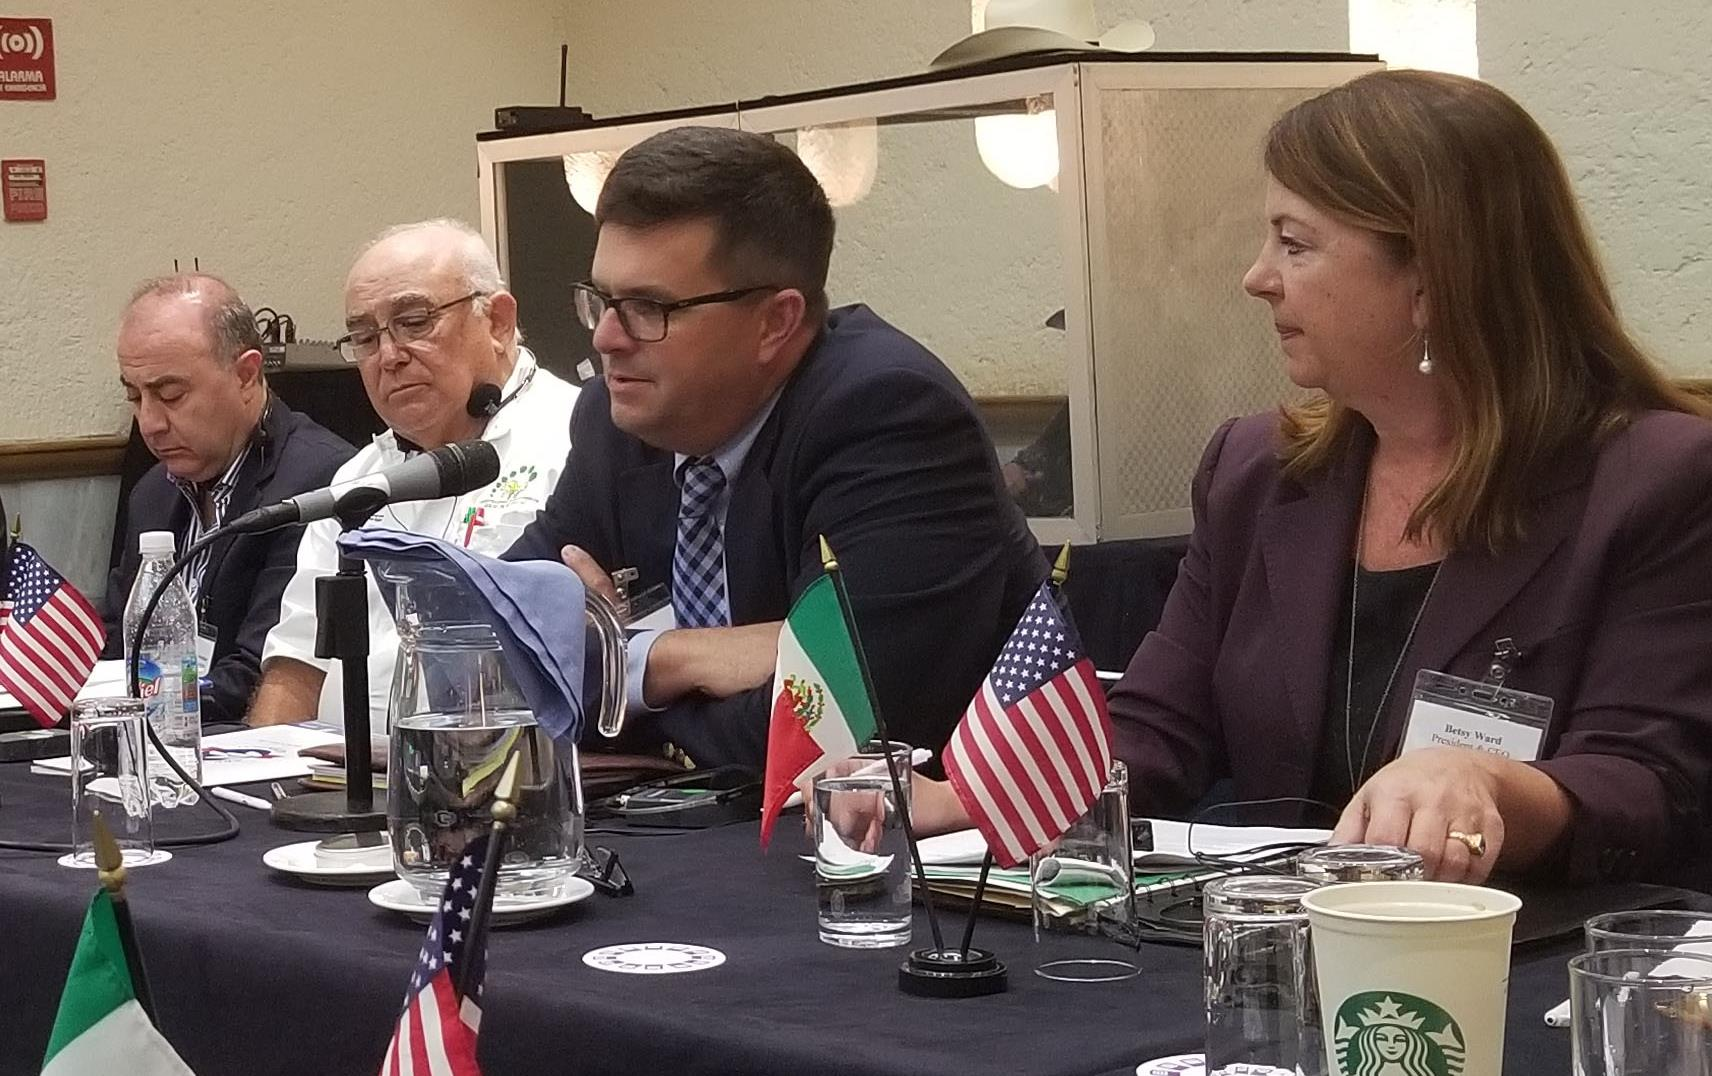 Trade Mission to Mexico, people sitting around board room table with small US & Mexican flags